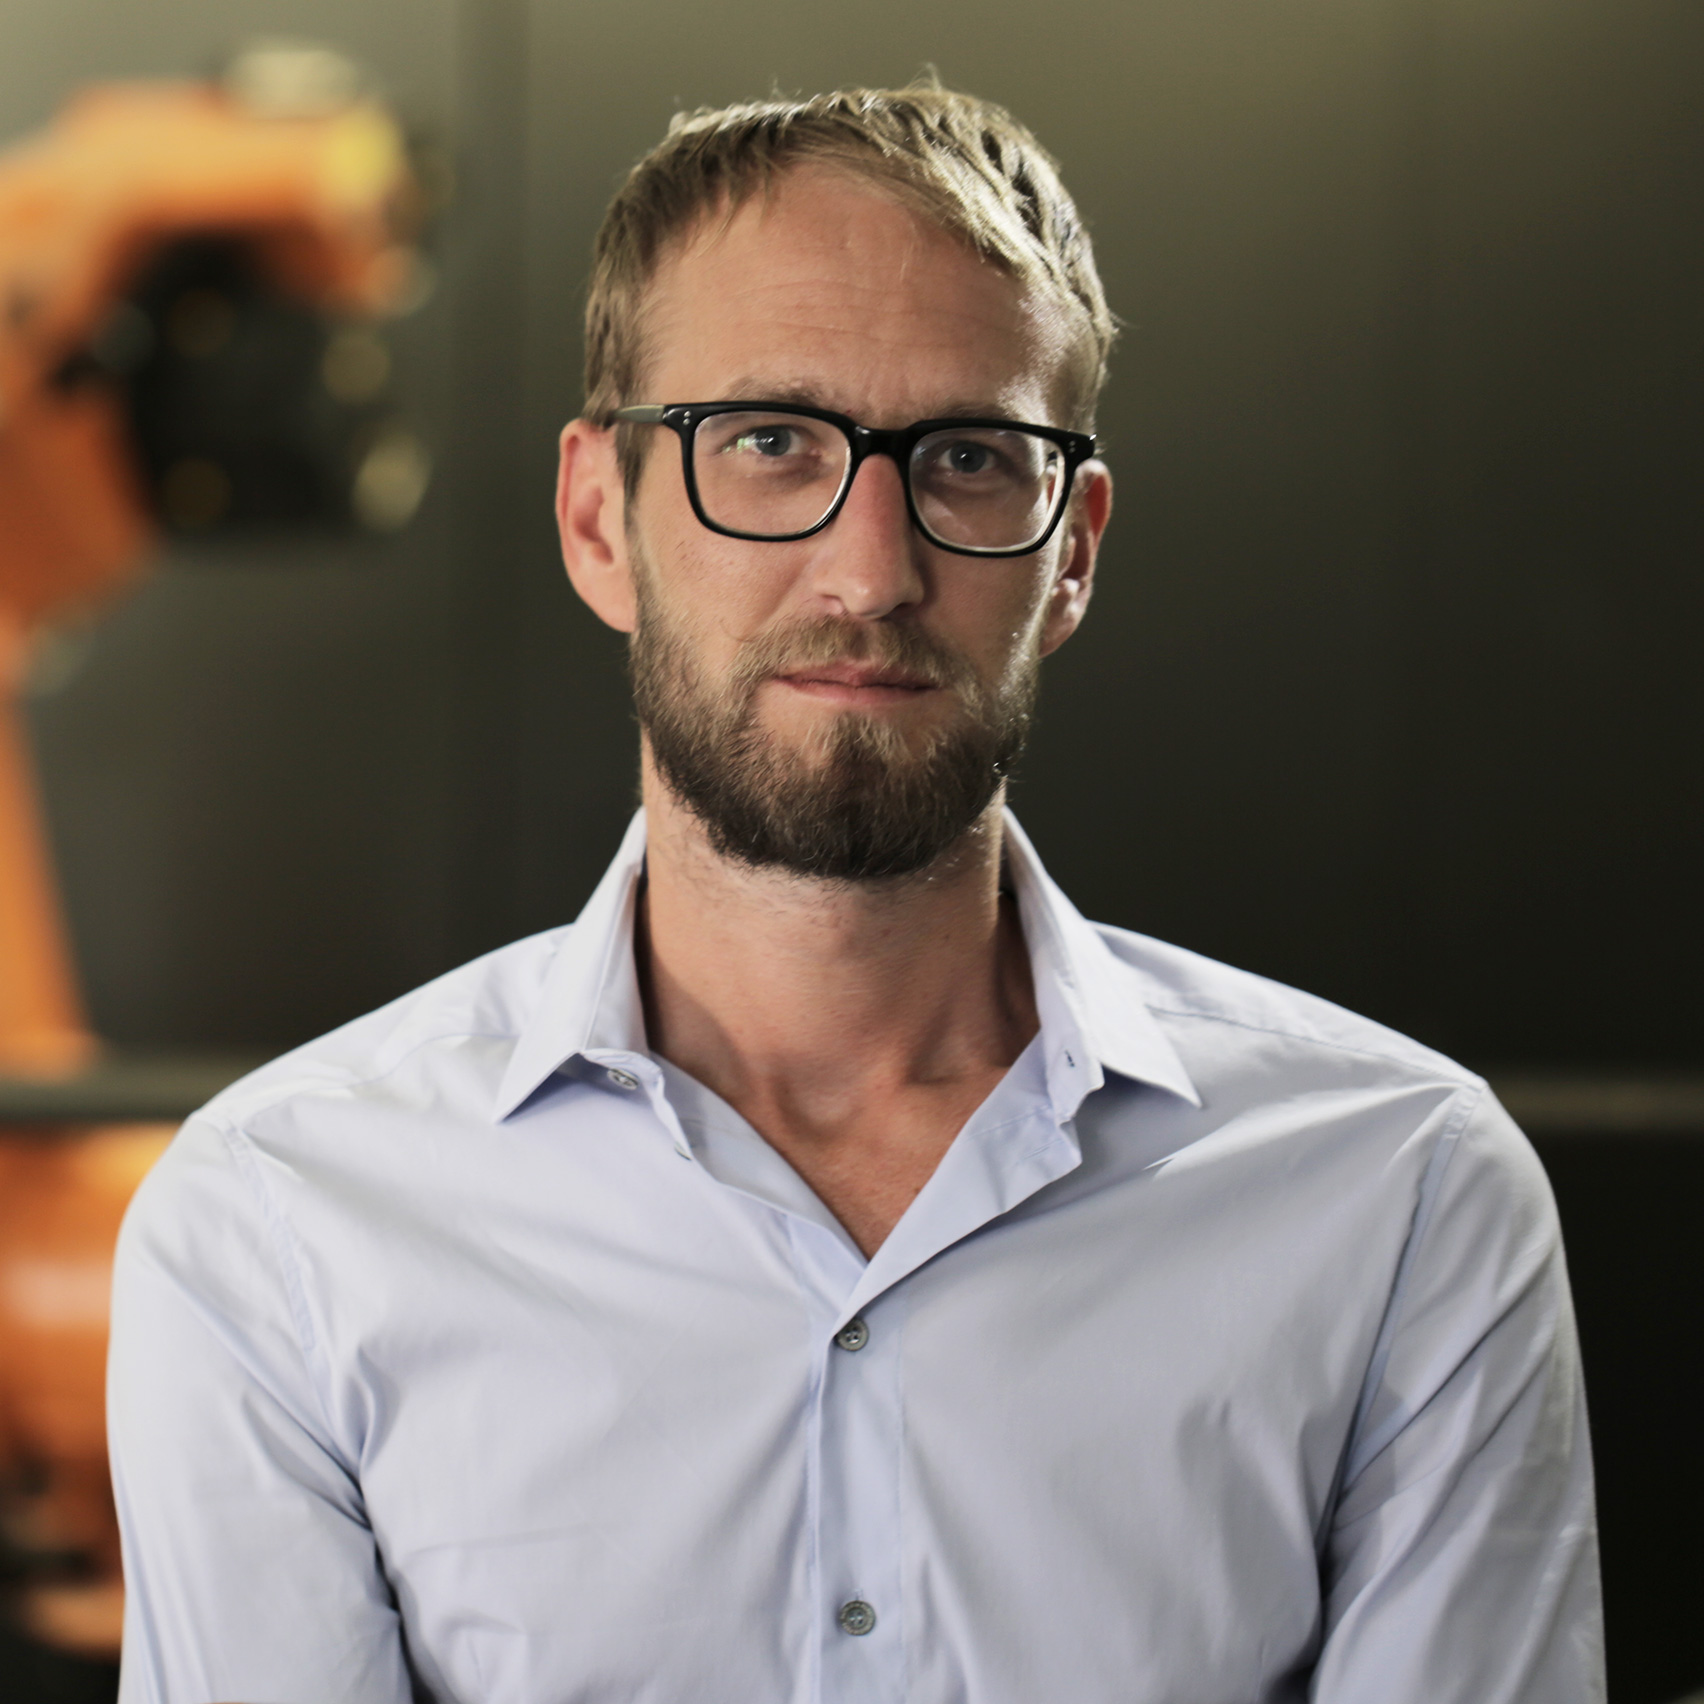 Connected industrial robots are dangerous but full of potential says Clemens Weisshaar